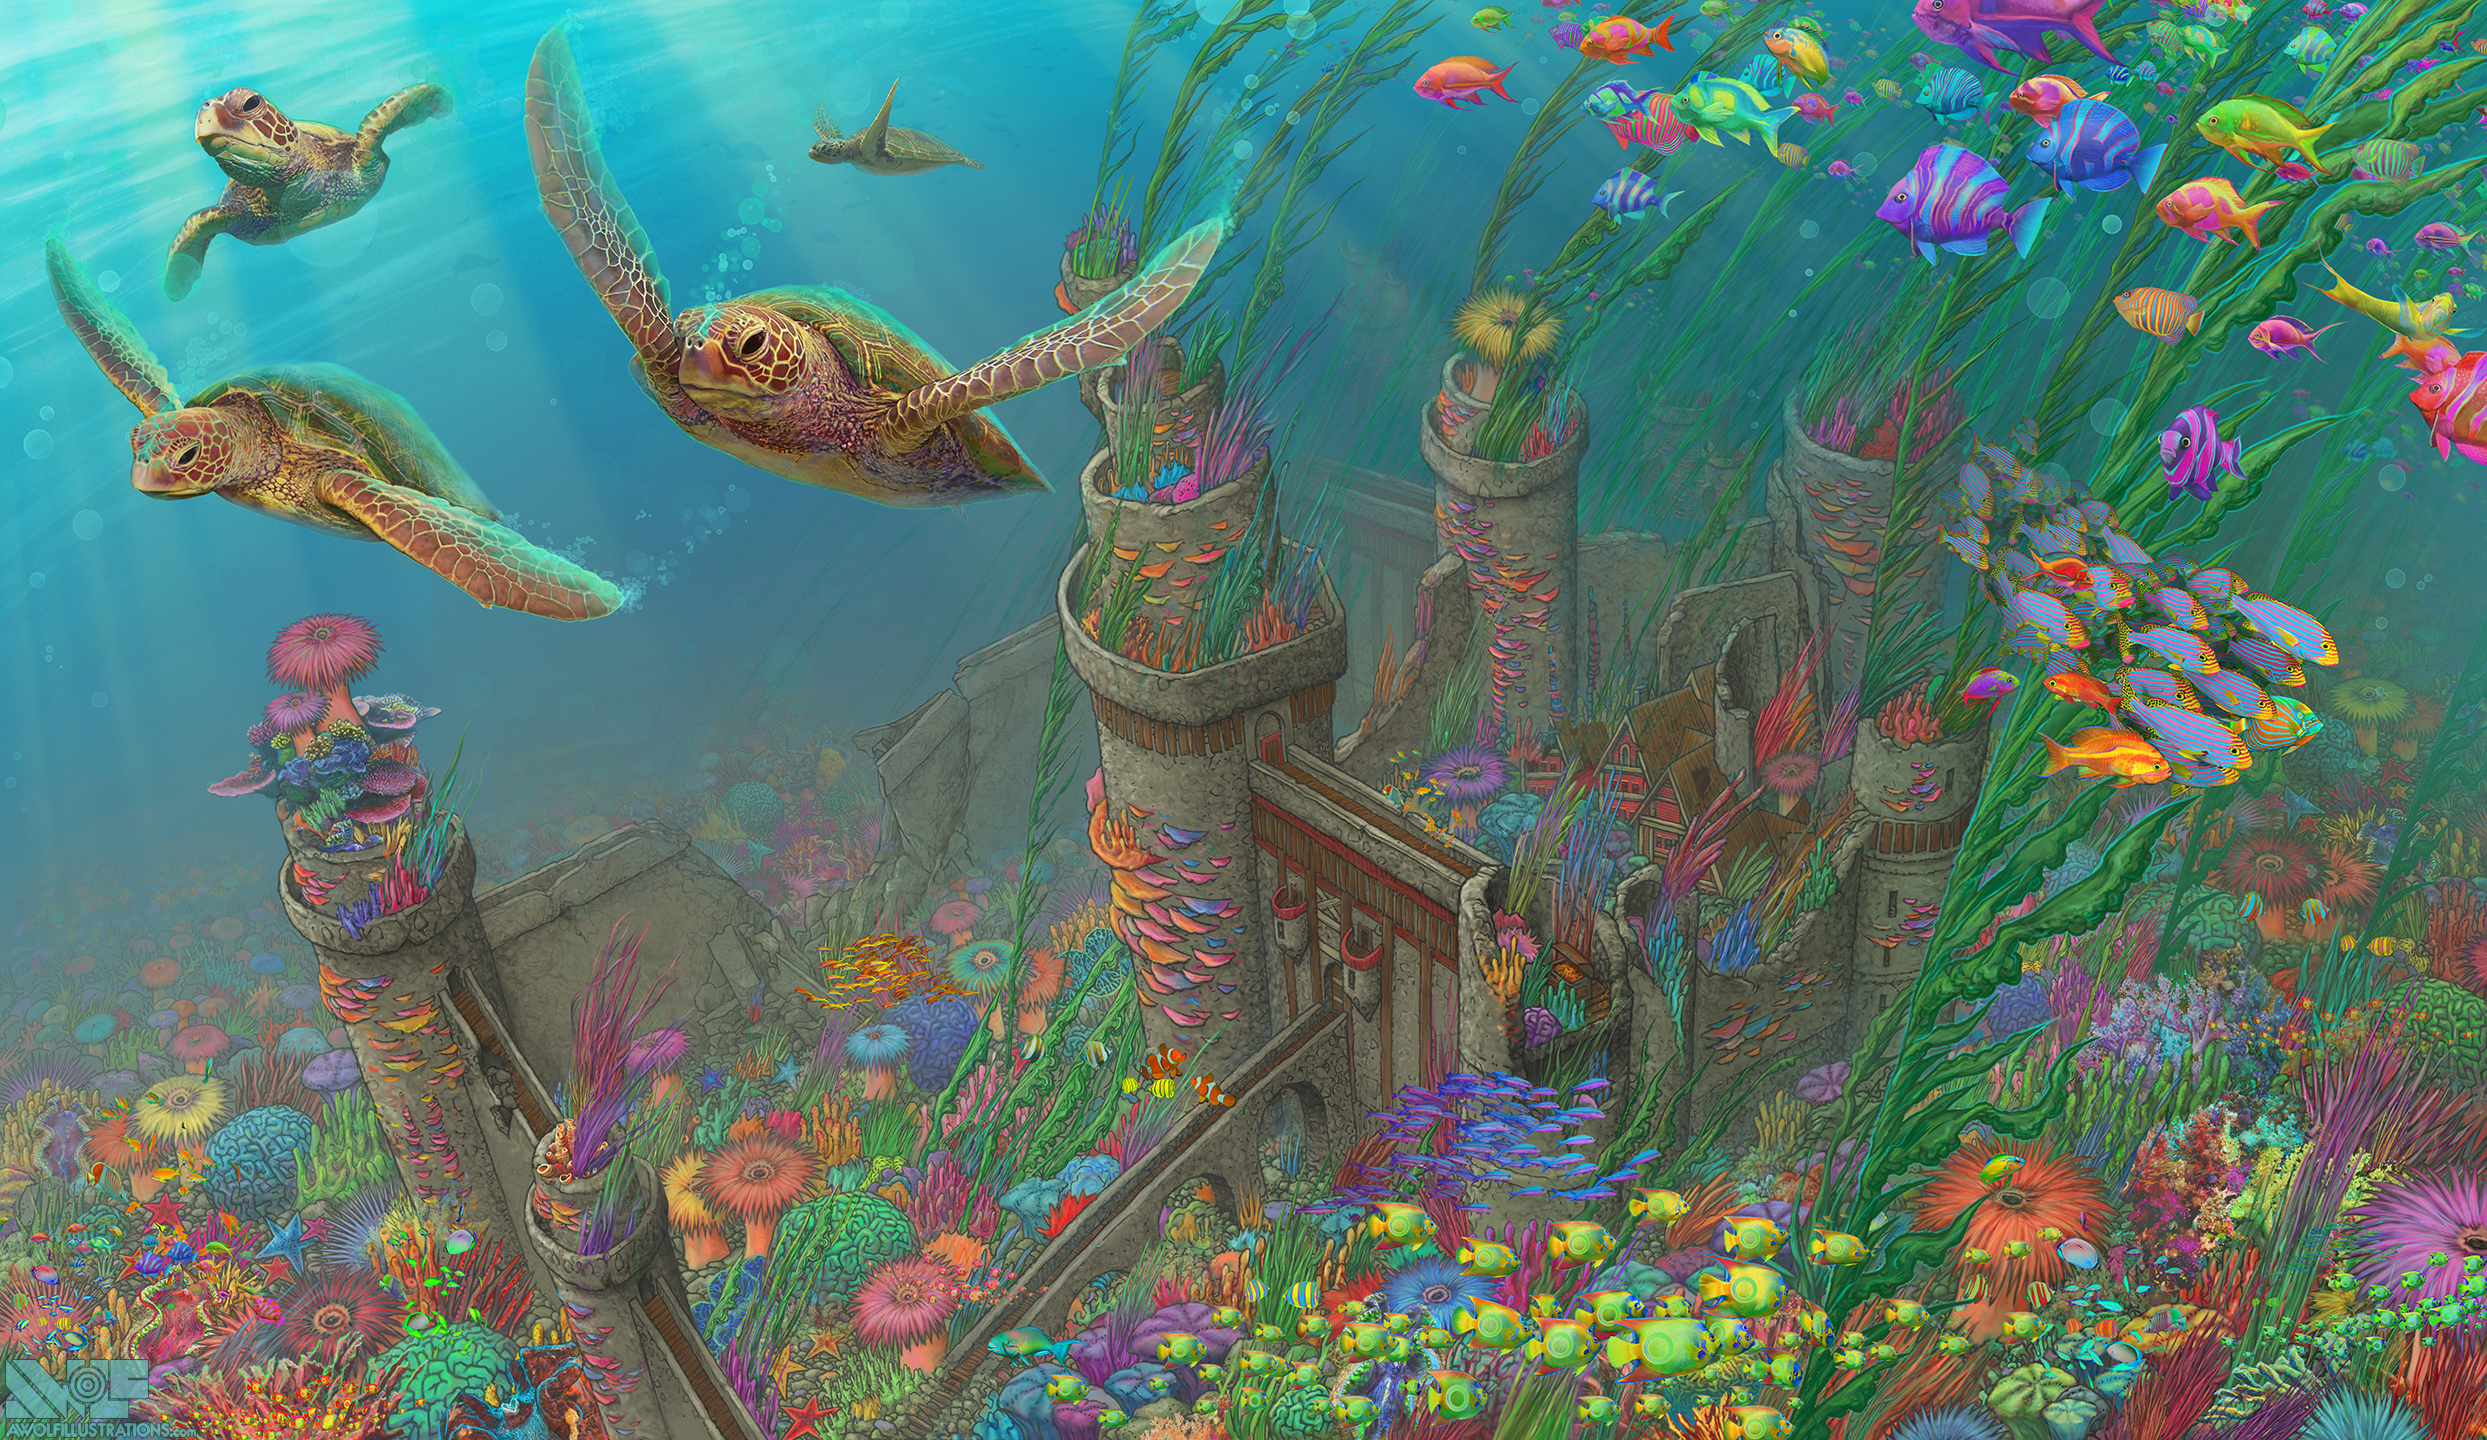 A digital illustration of the ruins of a castle that is now underwater and teaming with ocean life